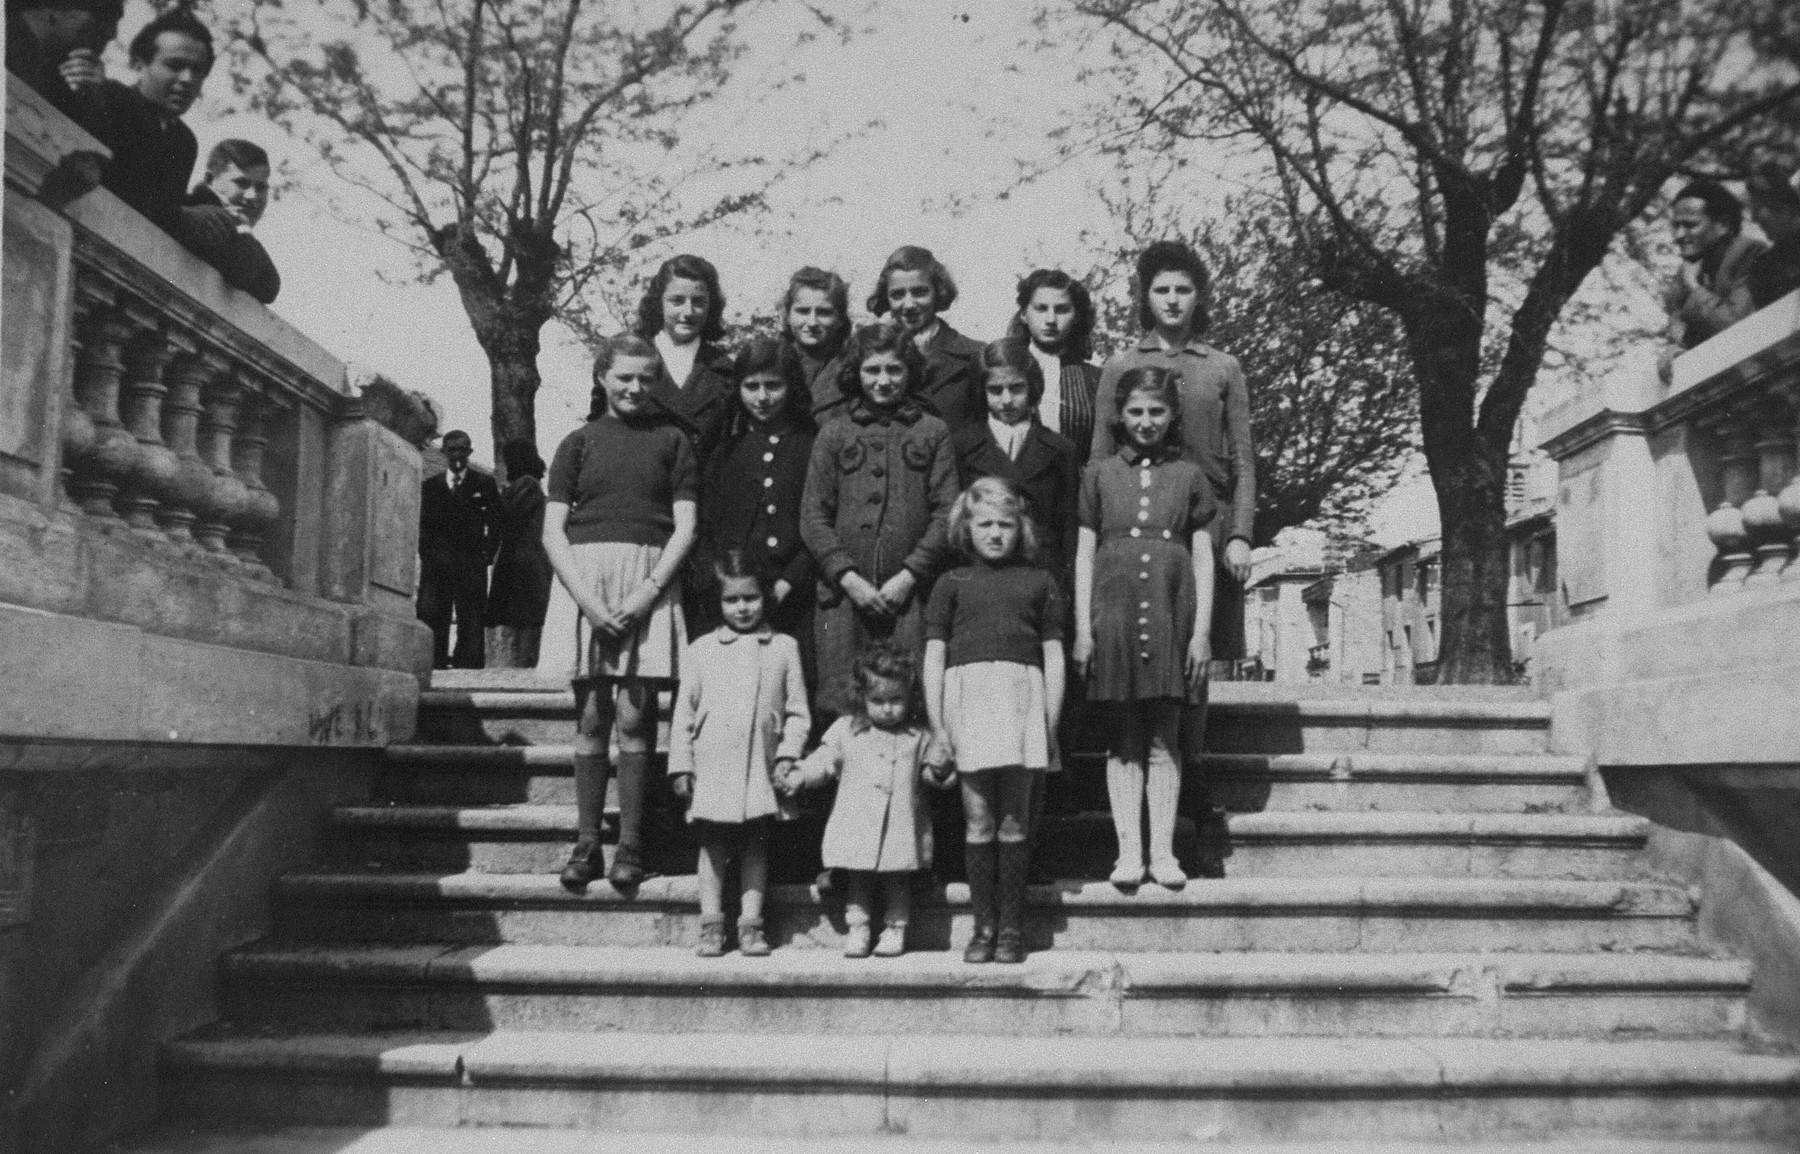 Group portrait of Jewish refugee children sheltered at the OSE children's home in Montagnac.